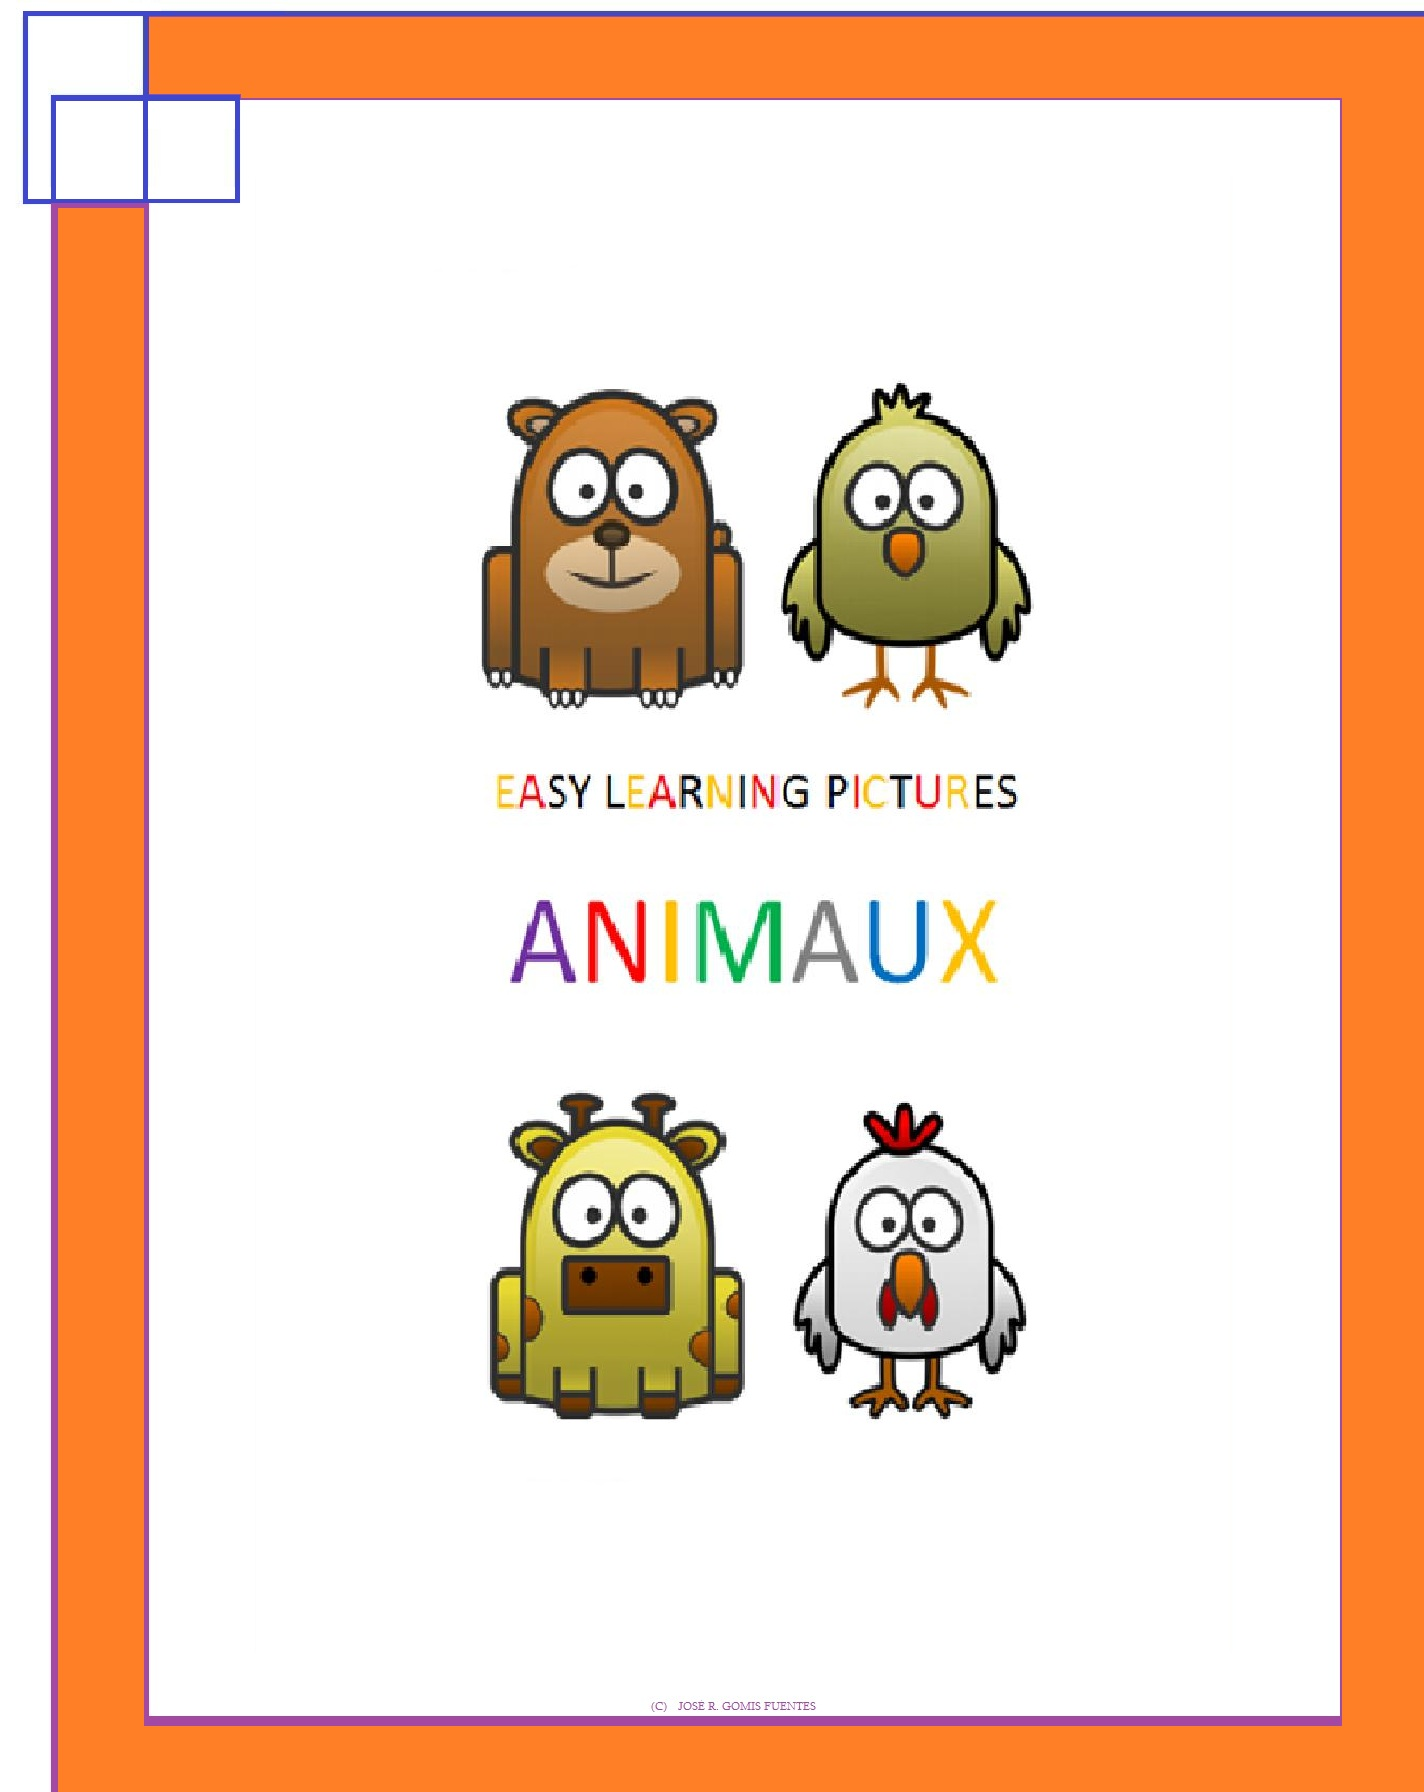 Jose Remigio Gomis Fuentes - Easy Learning Pictures. Animaux